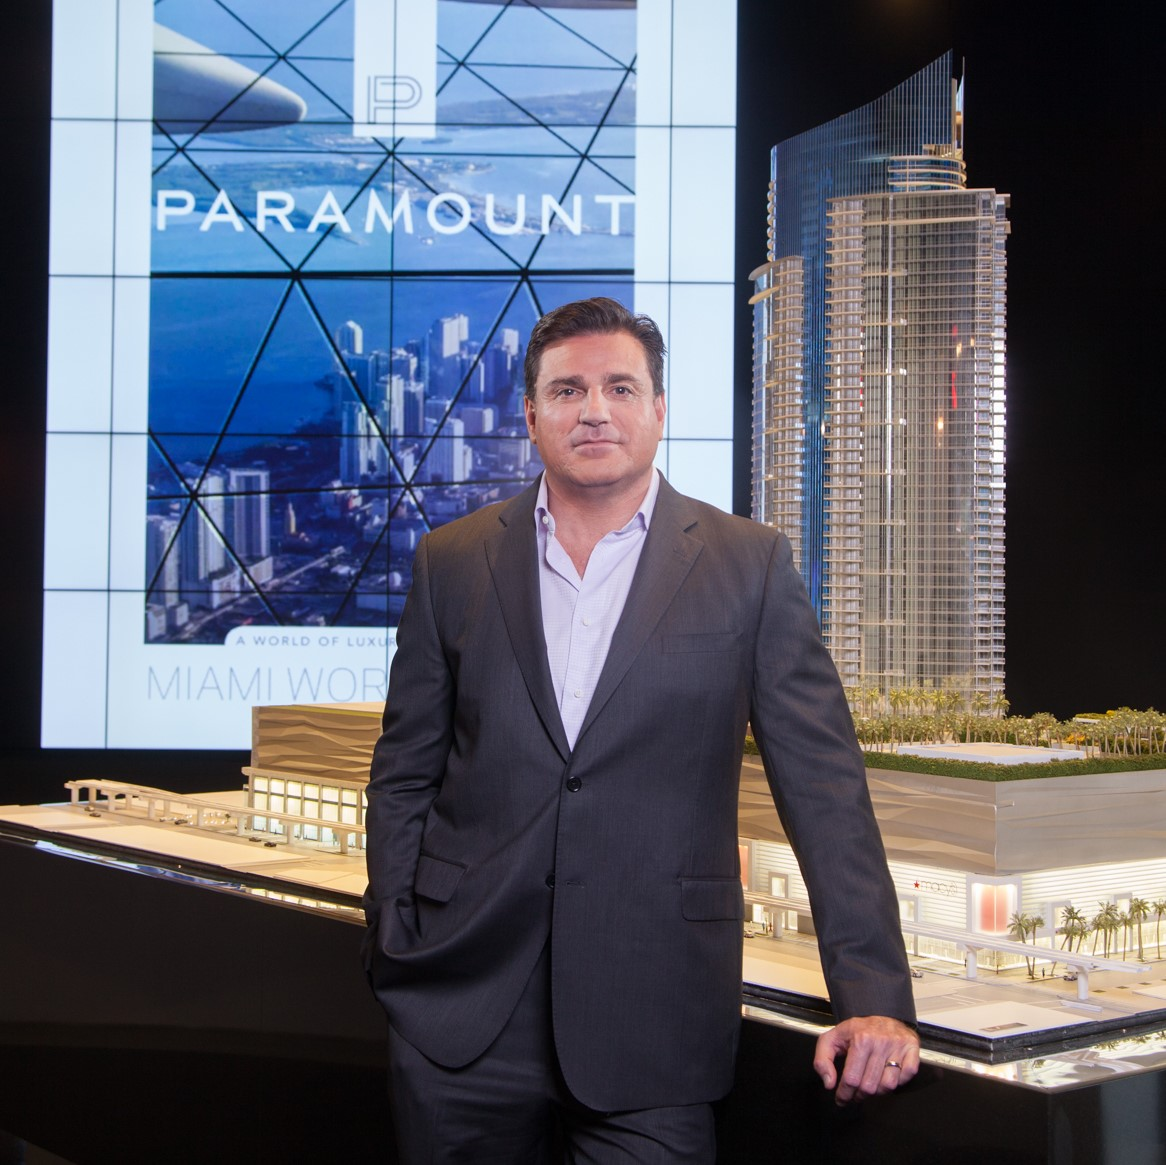 Paramount Miami Worldcenter Phase One Vertical